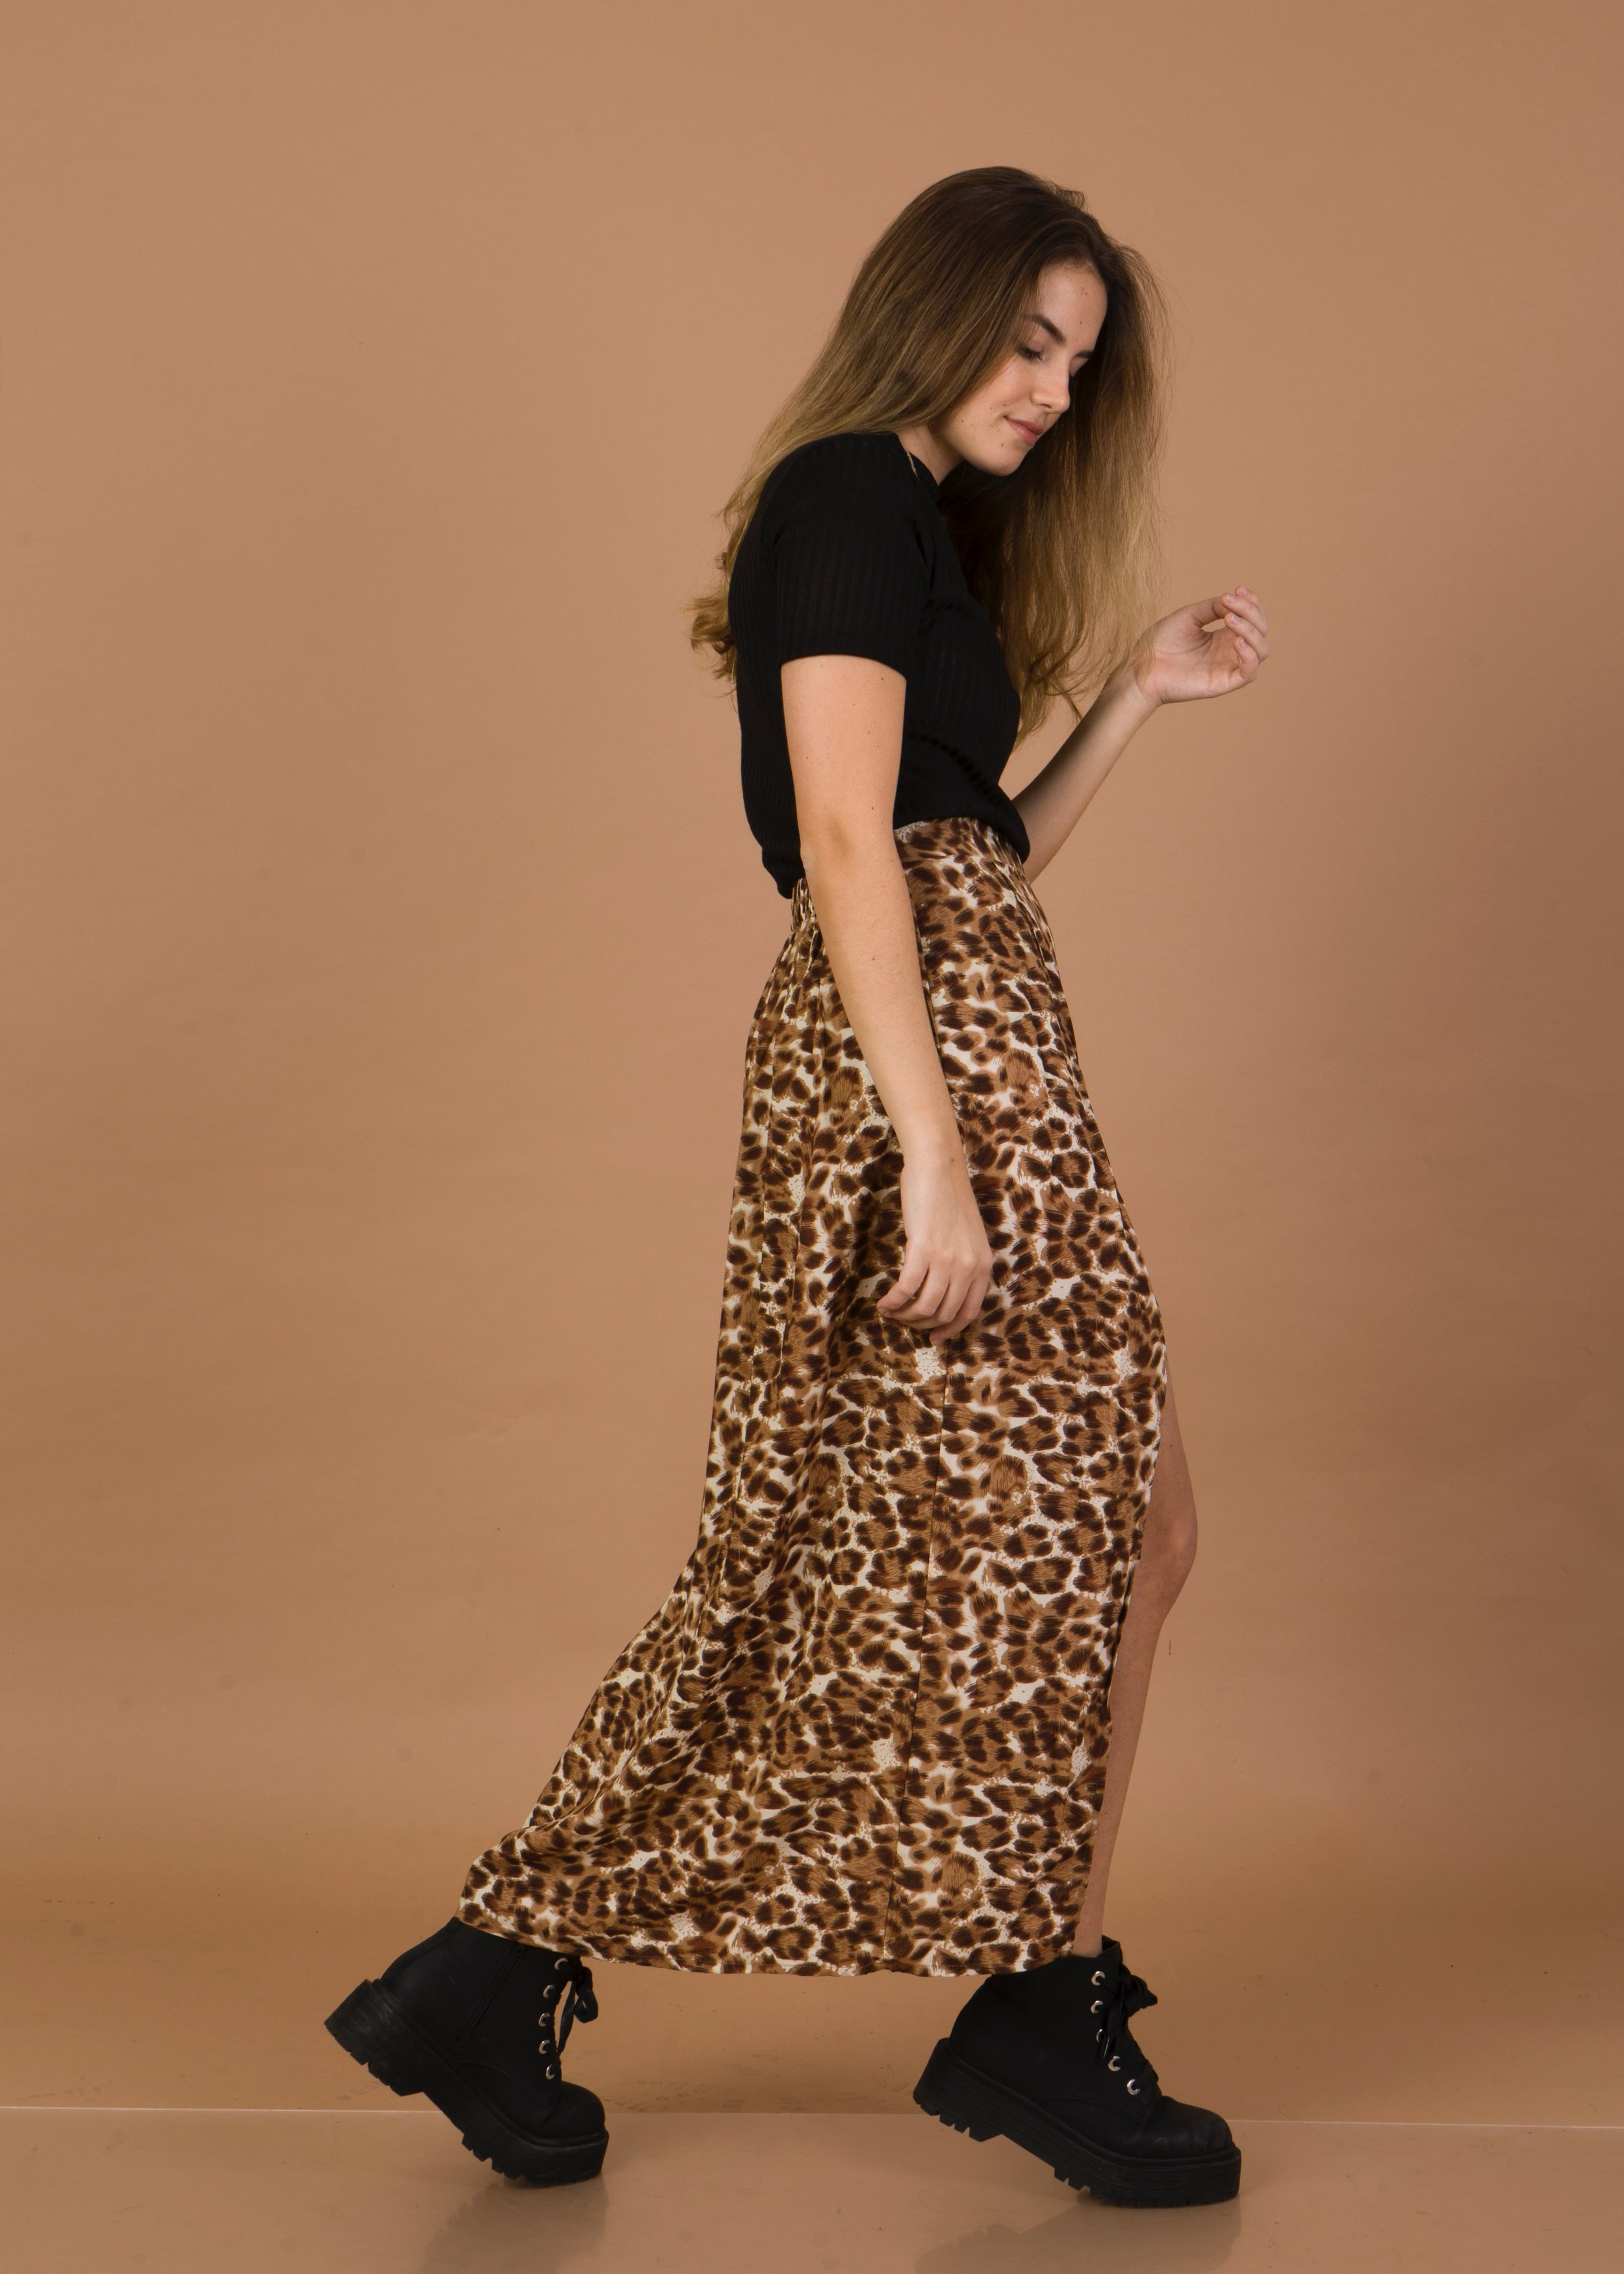 animal print clothes leopard print outfit.jpg